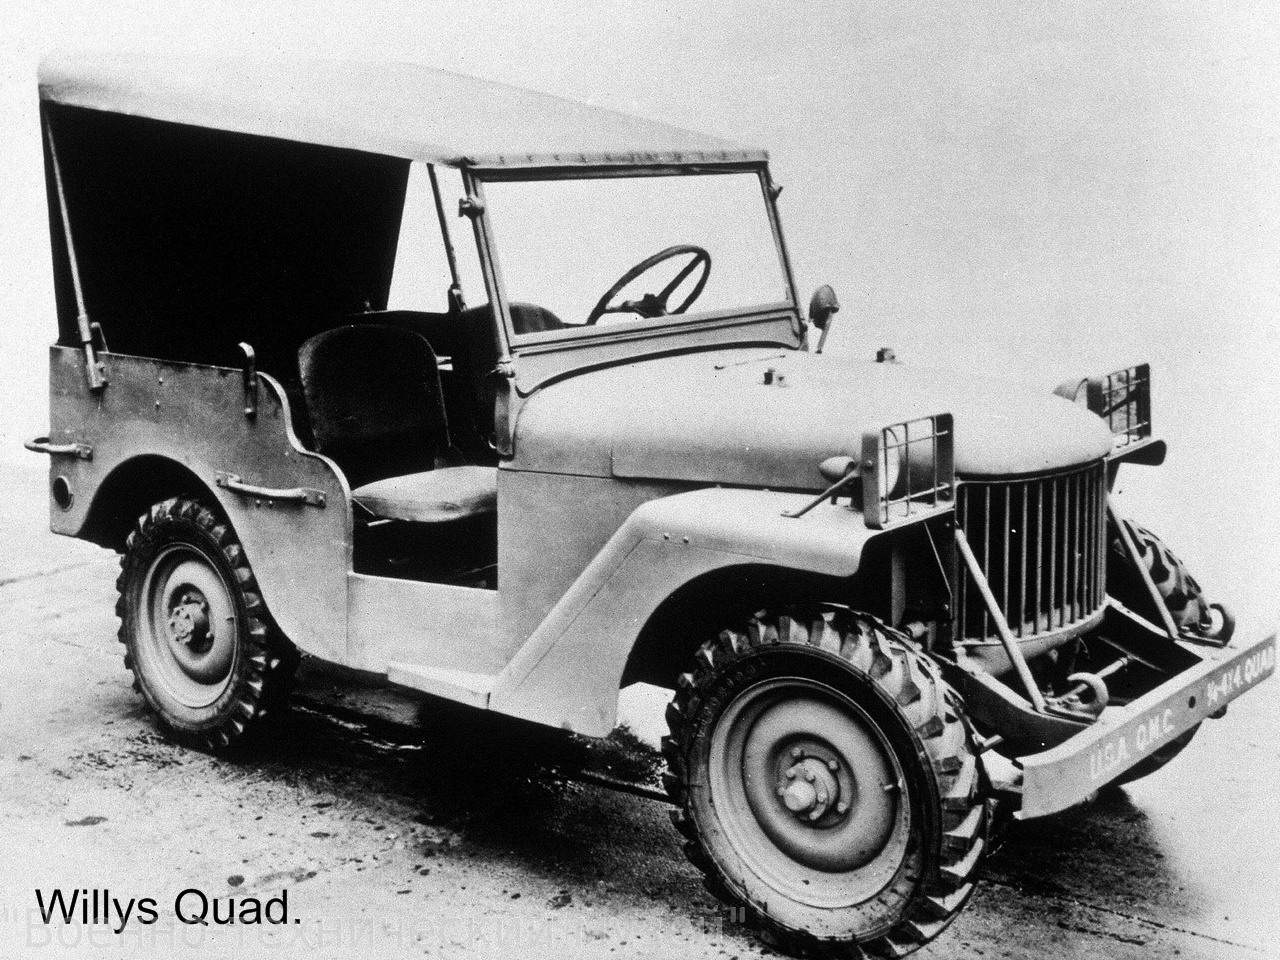 willys quad 2 - La Jeep Willys-Overland quad